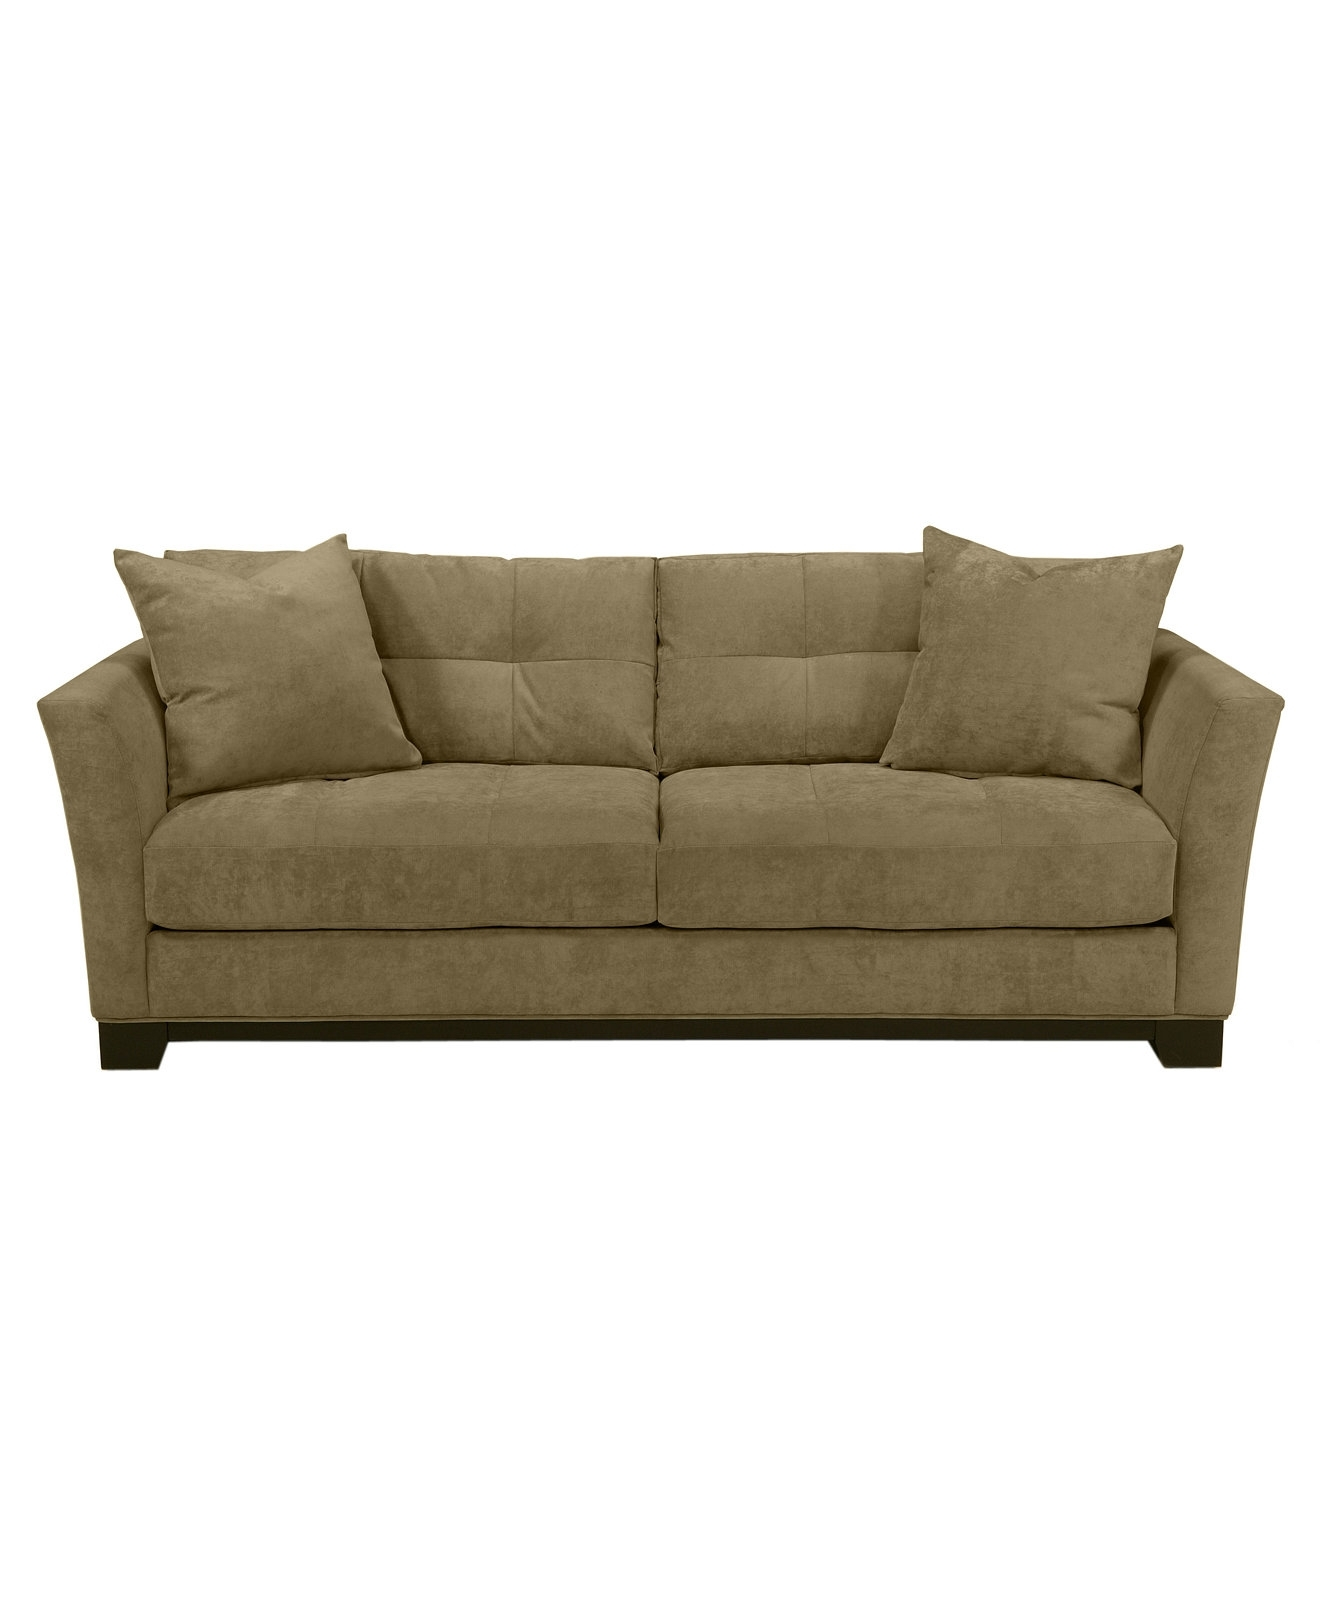 Widely Used Macys Sofas Regarding 90 Wide Elliot Fabric Microfiber Queen Sleeper Sofa Bed – Couches (View 20 of 20)